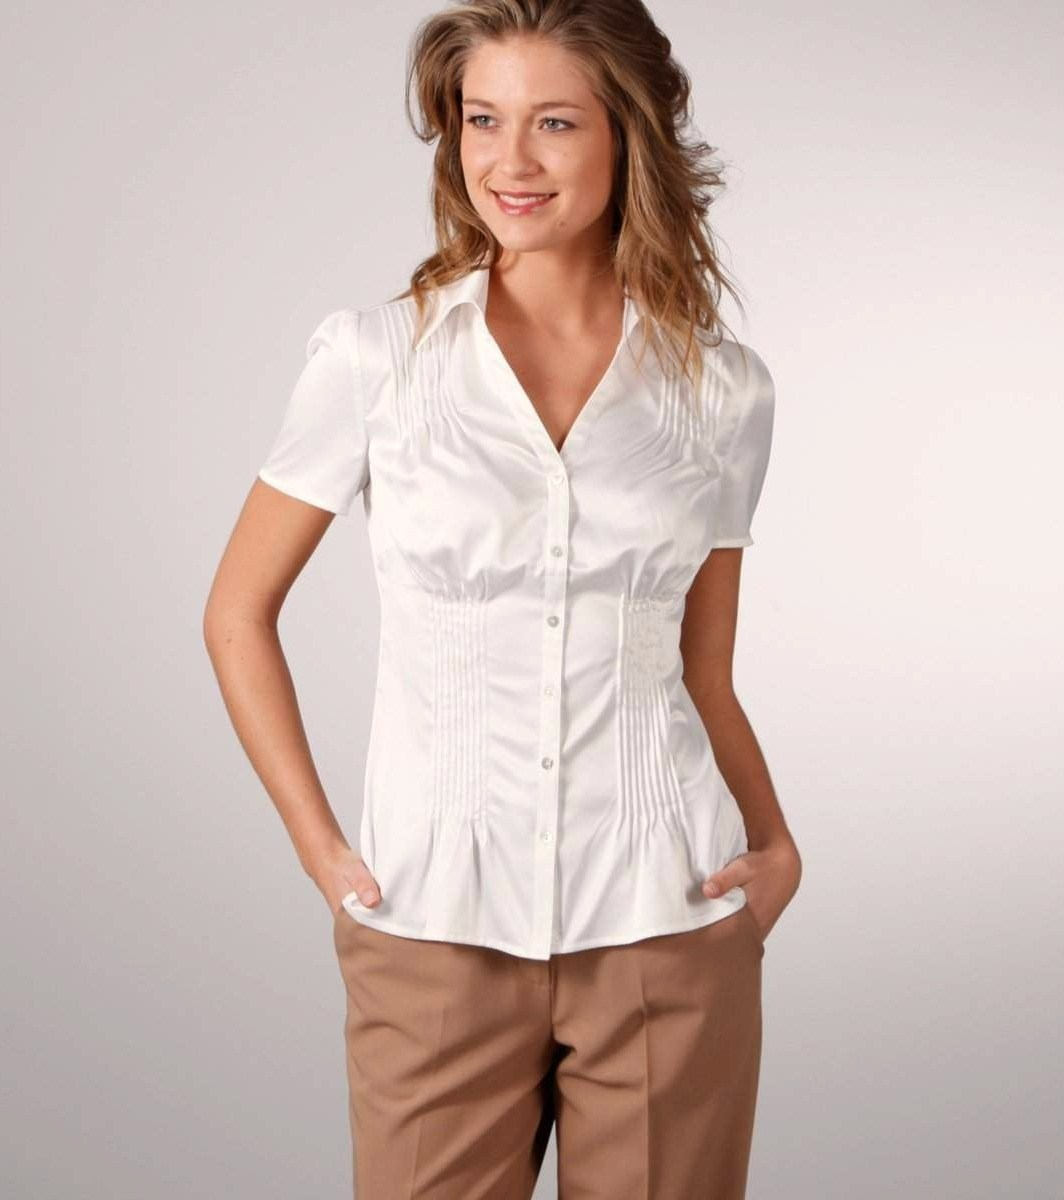 short sleeve blouses - women's tops. Item Type: blouses. Sleeve Length: short sleeve. Worthington Washed Satin Blouse - Plus. Add To Cart. Only at JCP. BUY MORE AND SAVE WITH CODE: ACTNOW9. $ Worthington Short Sleeve V Neck Woven Blouse - .